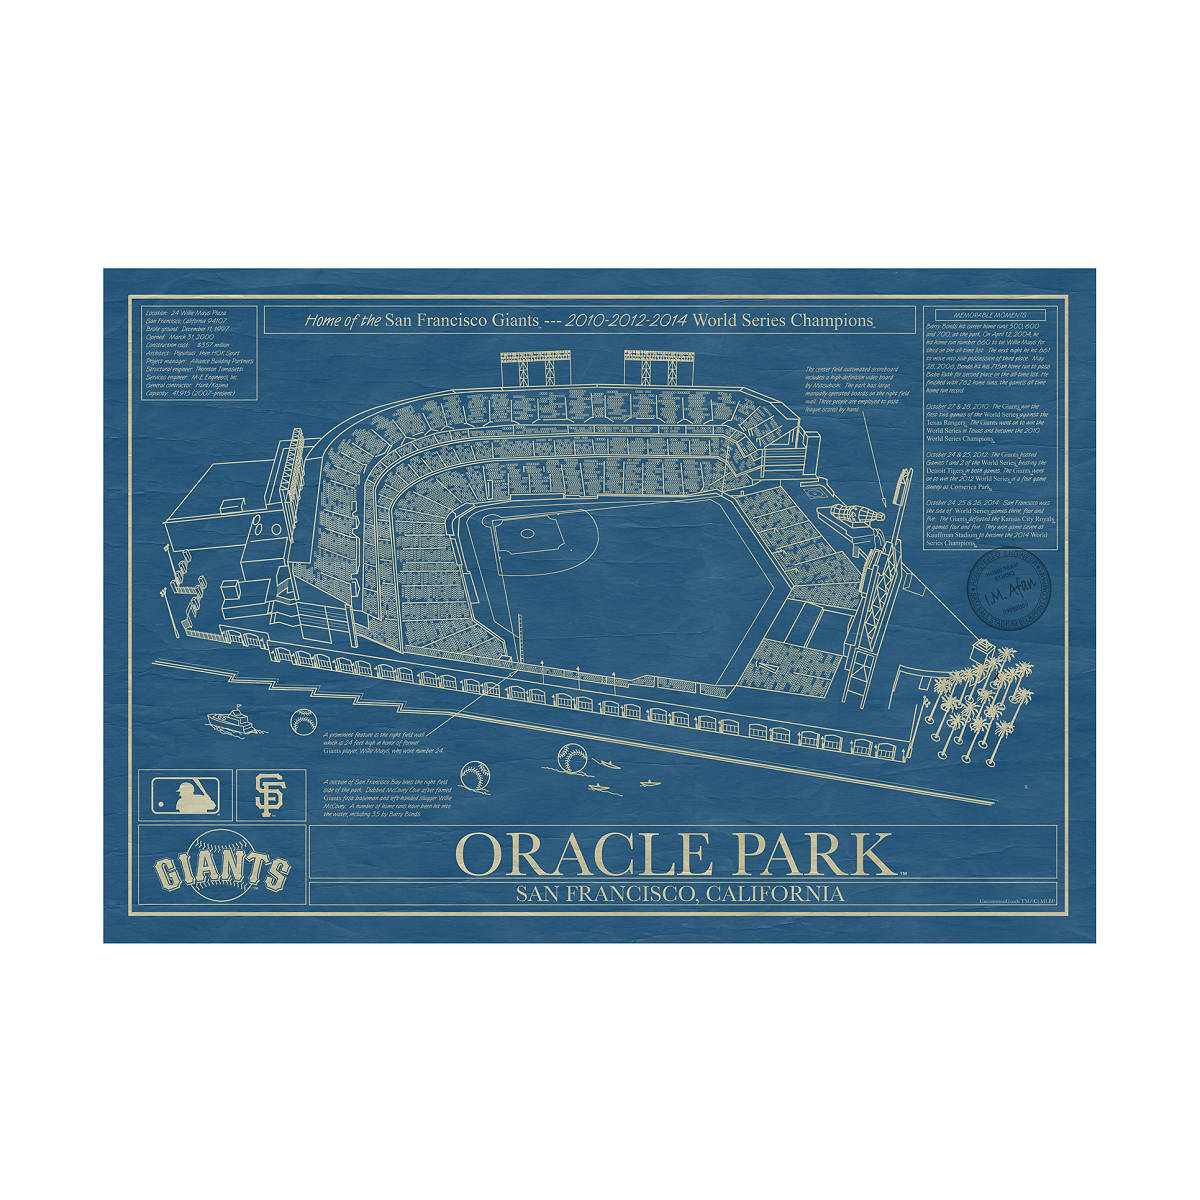 Large baseball stadium blueprints baseball wall art fenway park large baseball stadium blueprints 2 thumbnail malvernweather Gallery